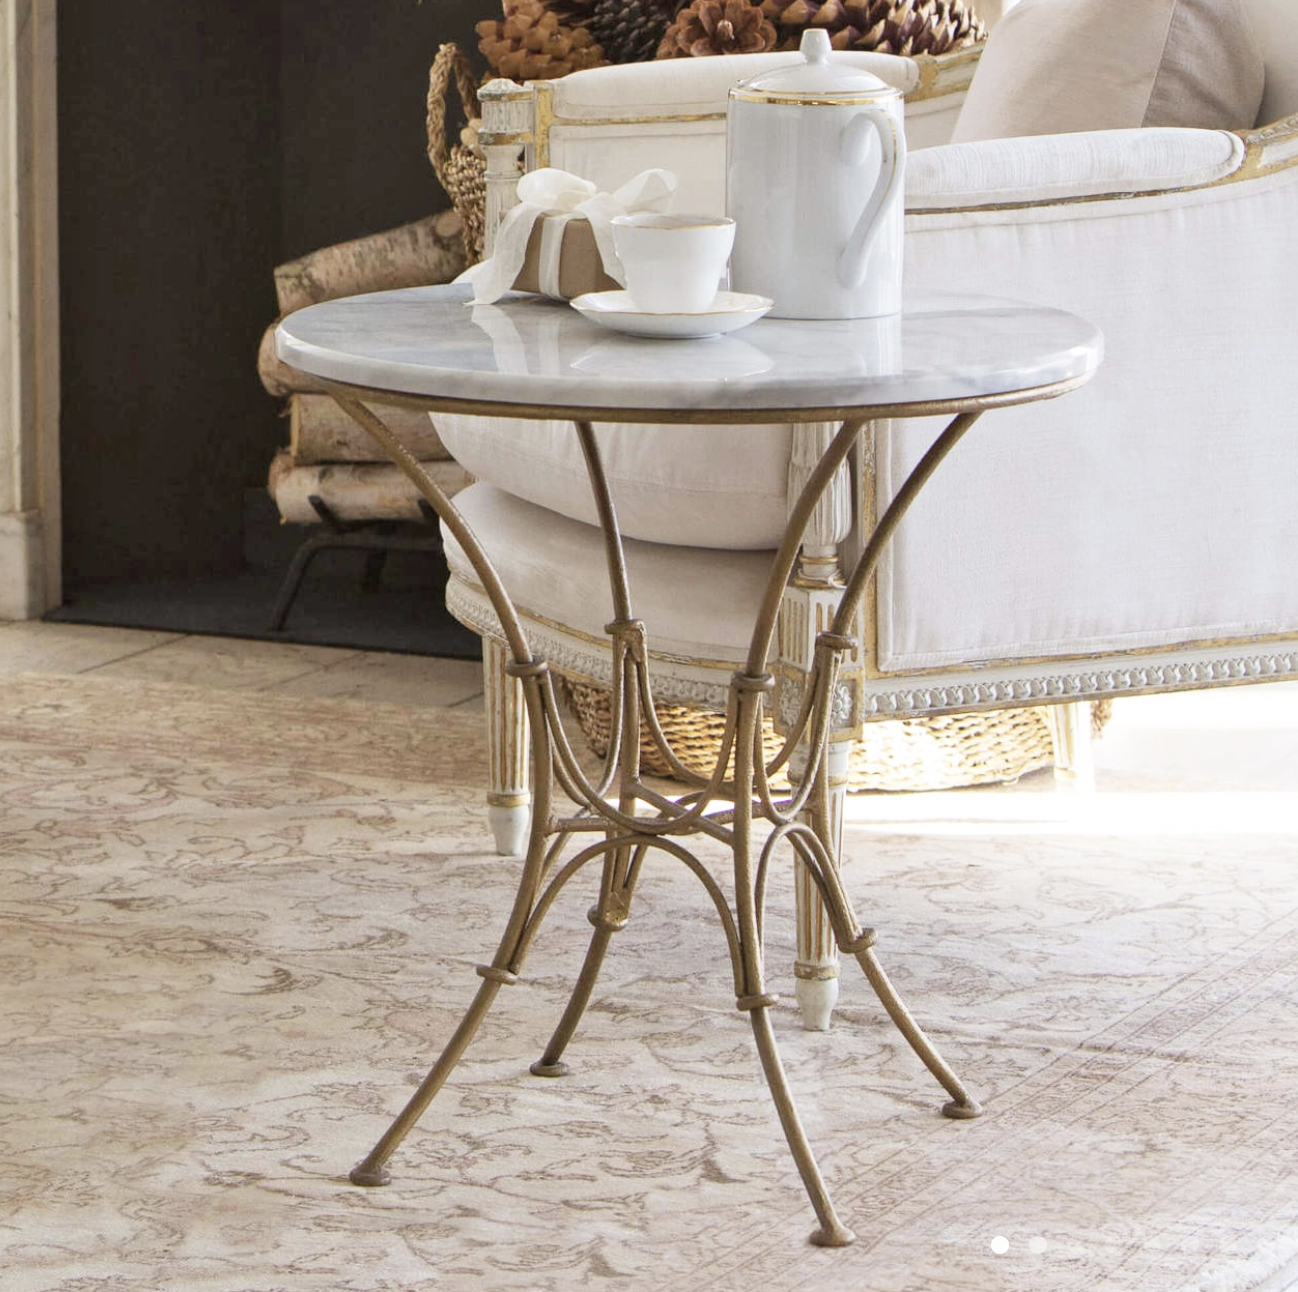 Parisian Side Table in Worn Gold Finish